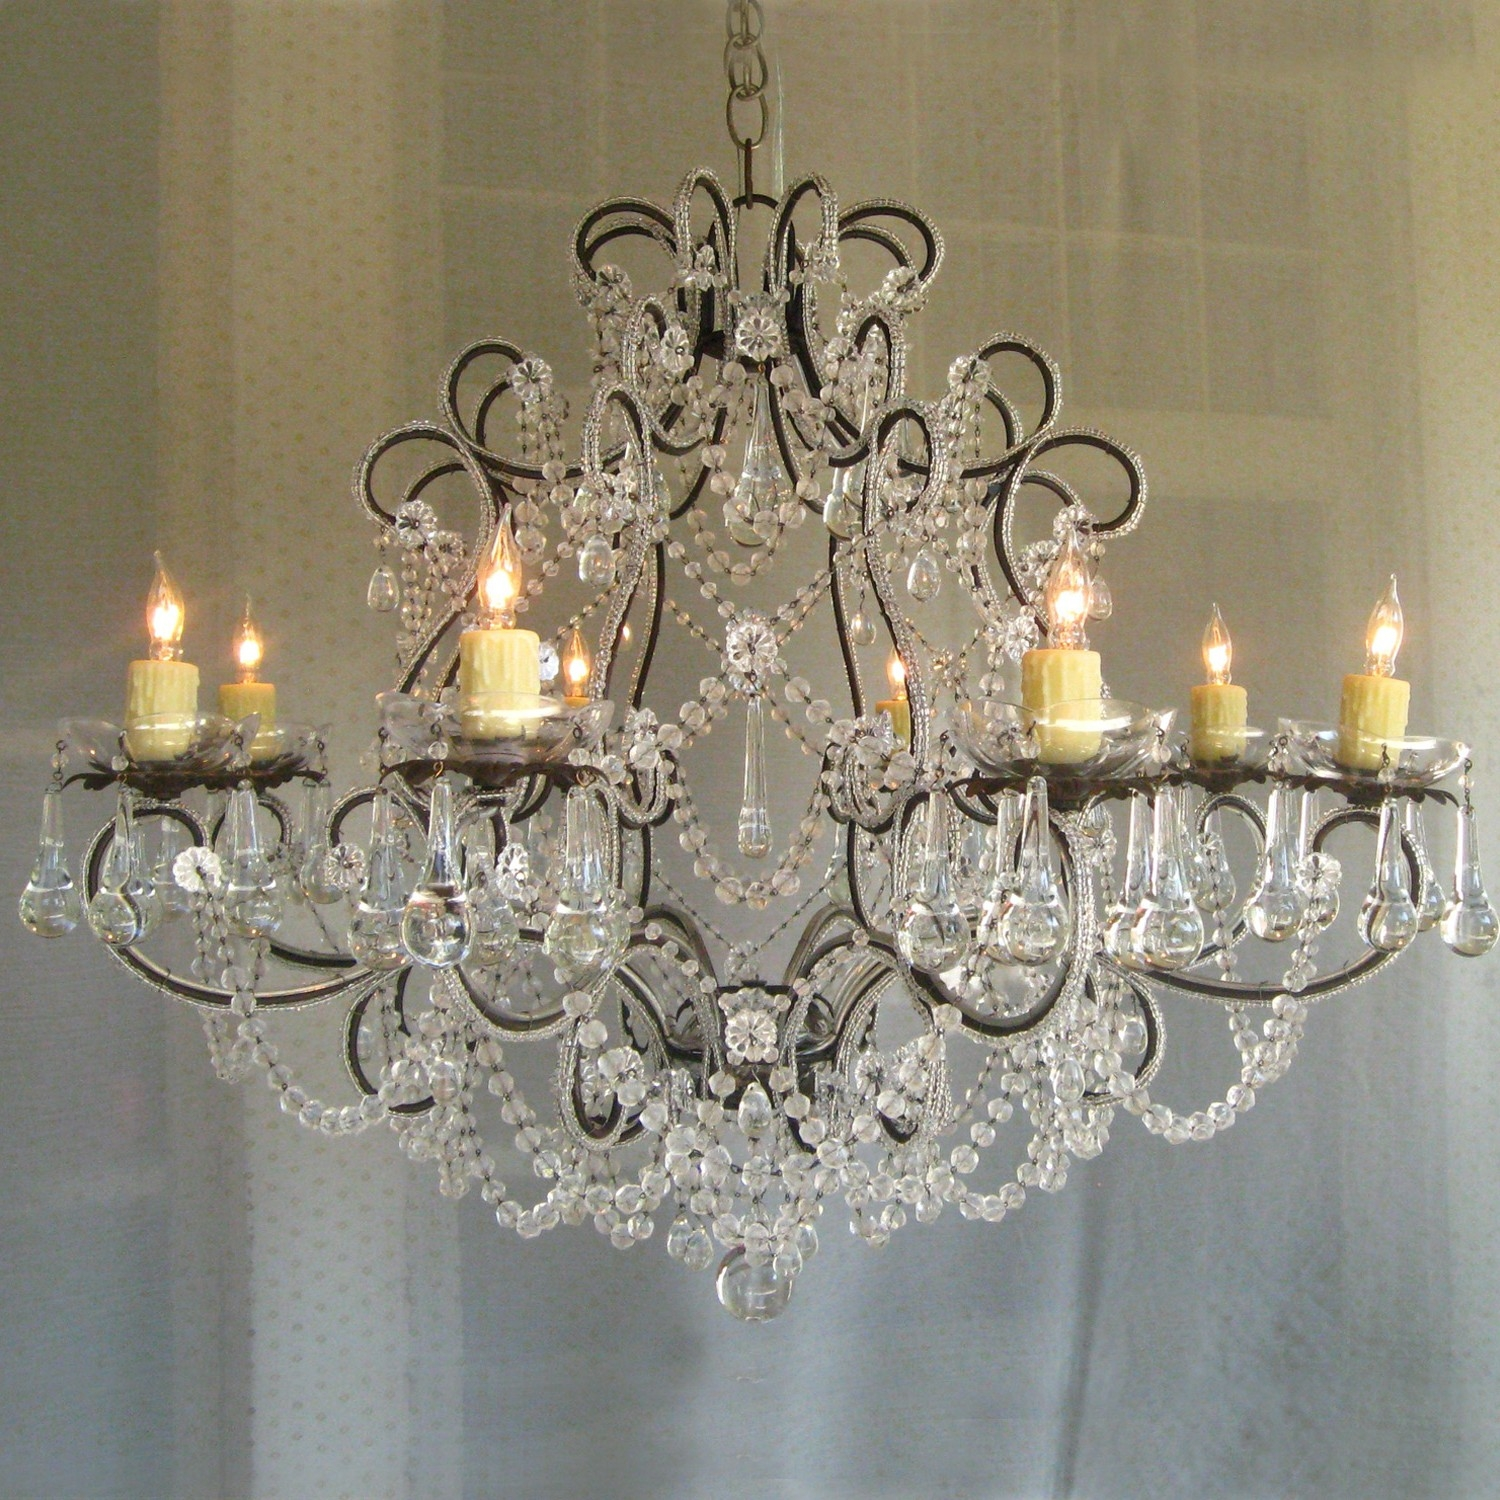 Modern Illumination Solutions Iron Chandeliers Lamp World Within Shabby Chic Chandeliers (View 14 of 15)